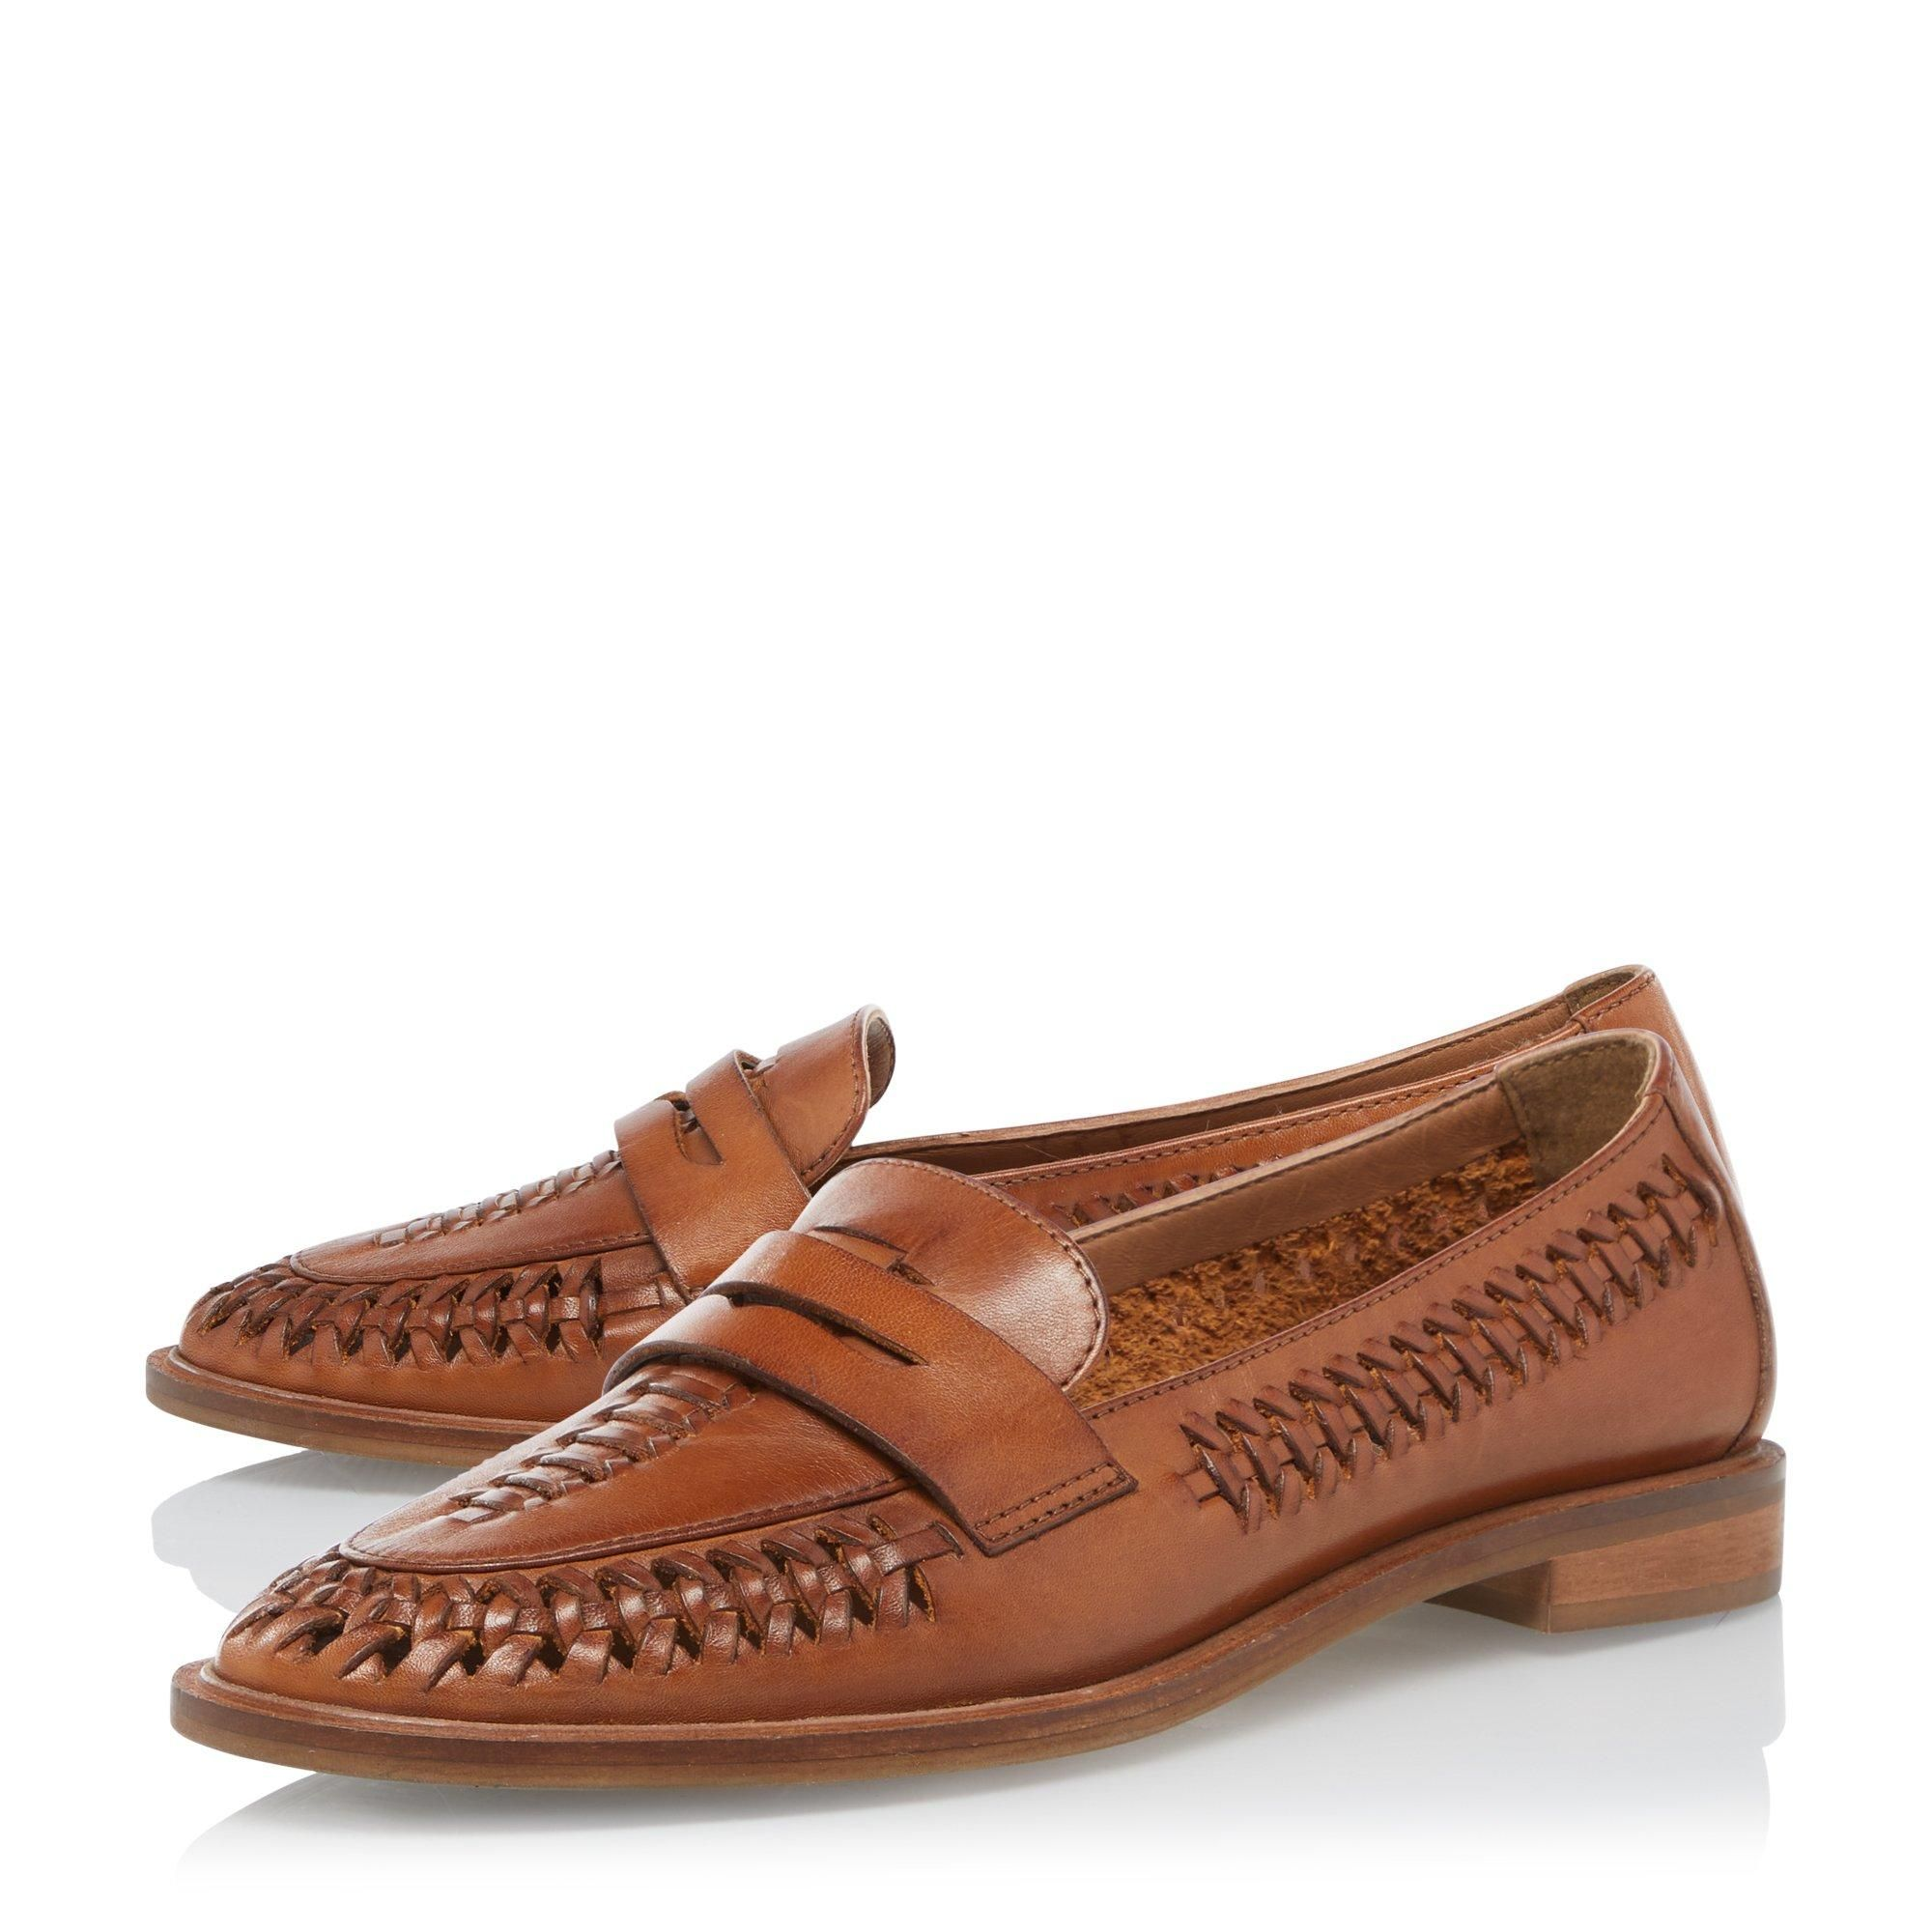 Dune Ladies GAILLS Woven Penny Loafer